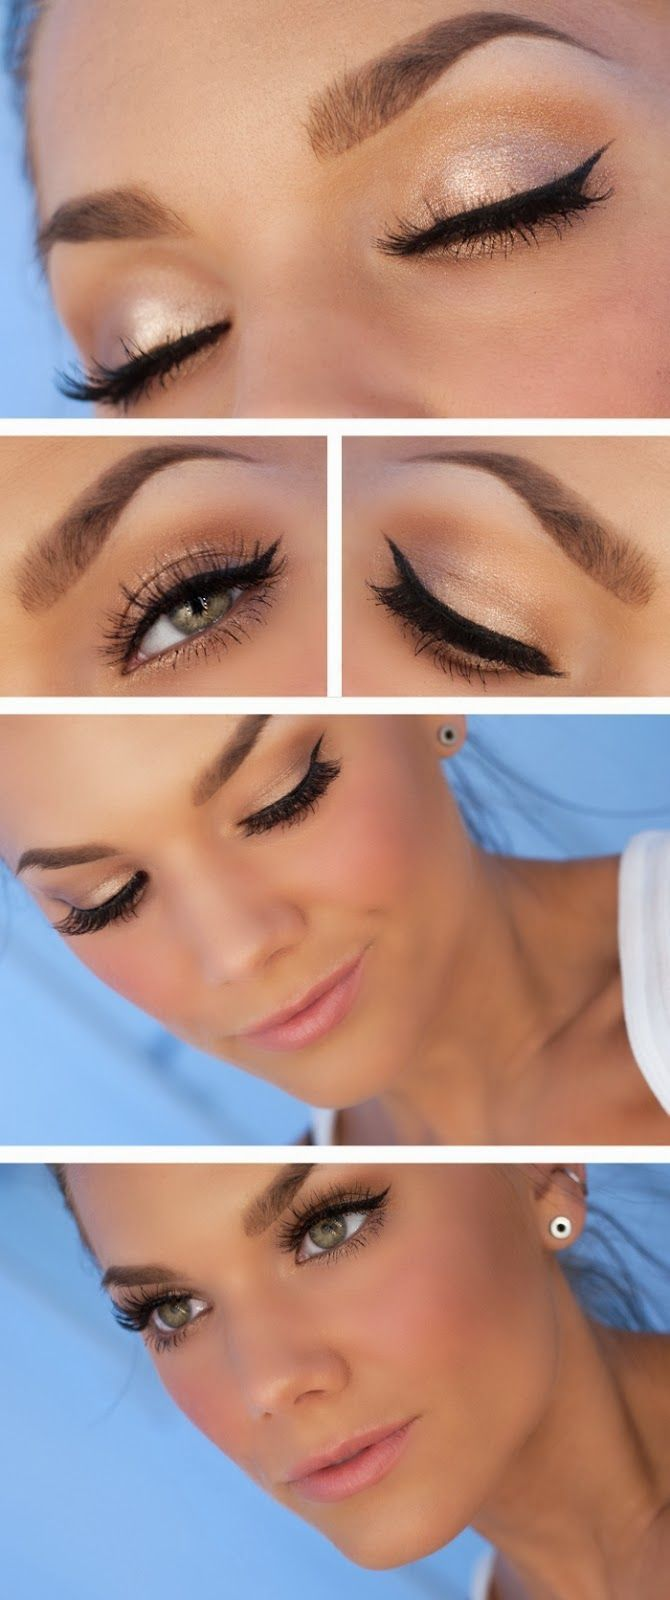 Best Makeup Tips for a Beautiful Natural Look http://pinmakeuptips.com/best-makeup-tips-for-a-beautiful-natural-look/